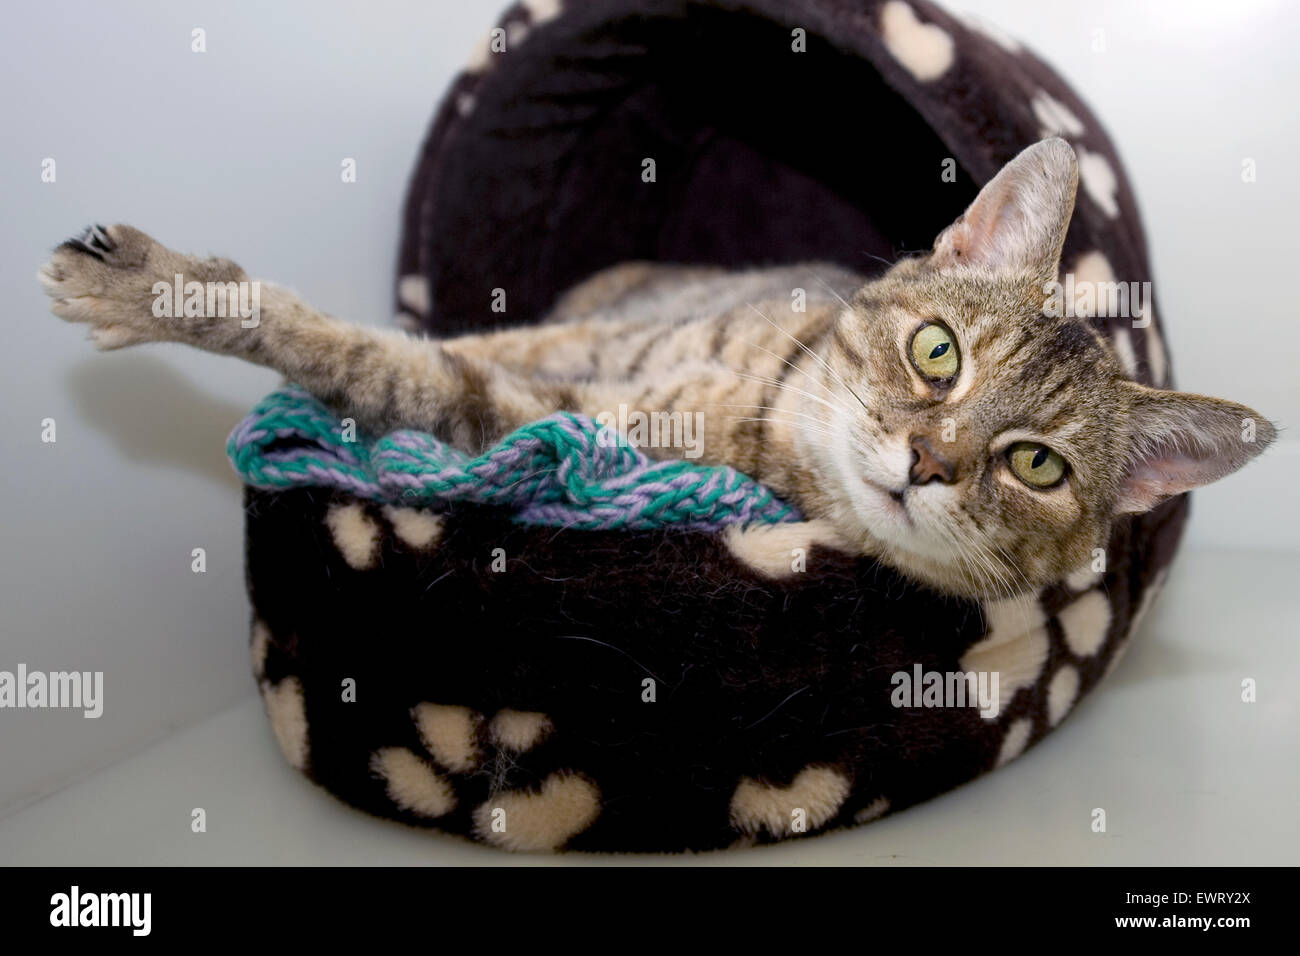 cat stretching its basket - Stock Image